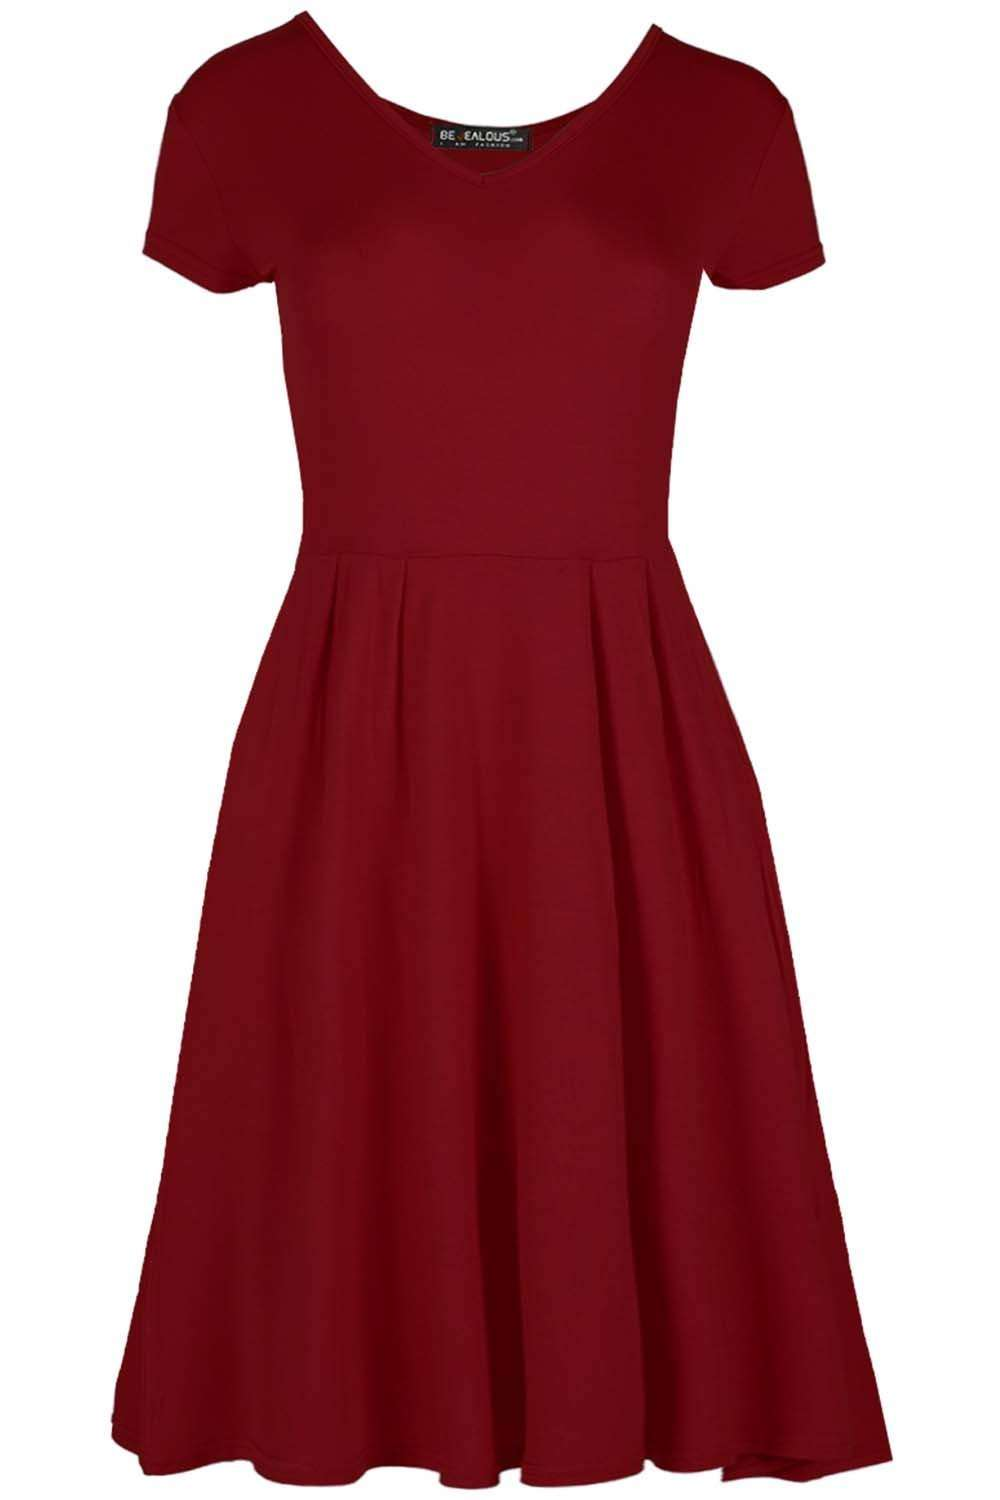 Cadie V Neck Basic Jersey Mini Swing Dress - bejealous-com